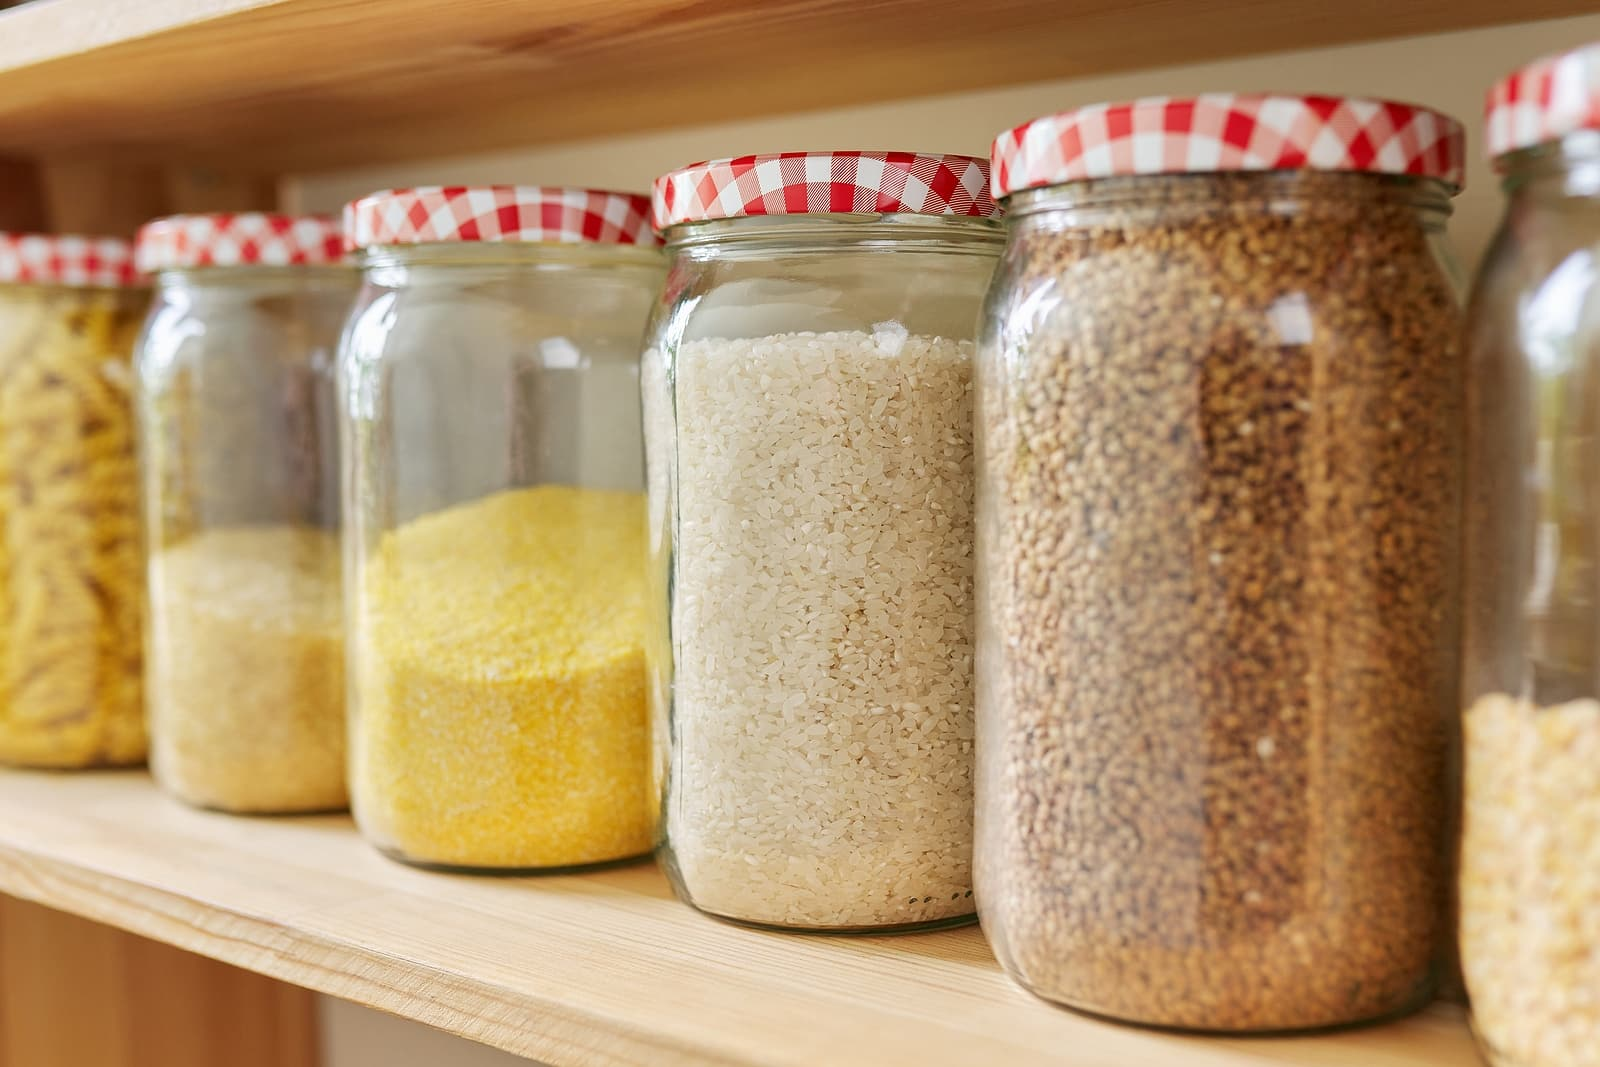 Food Shortages Are Coming: What You Should Stockpile Now